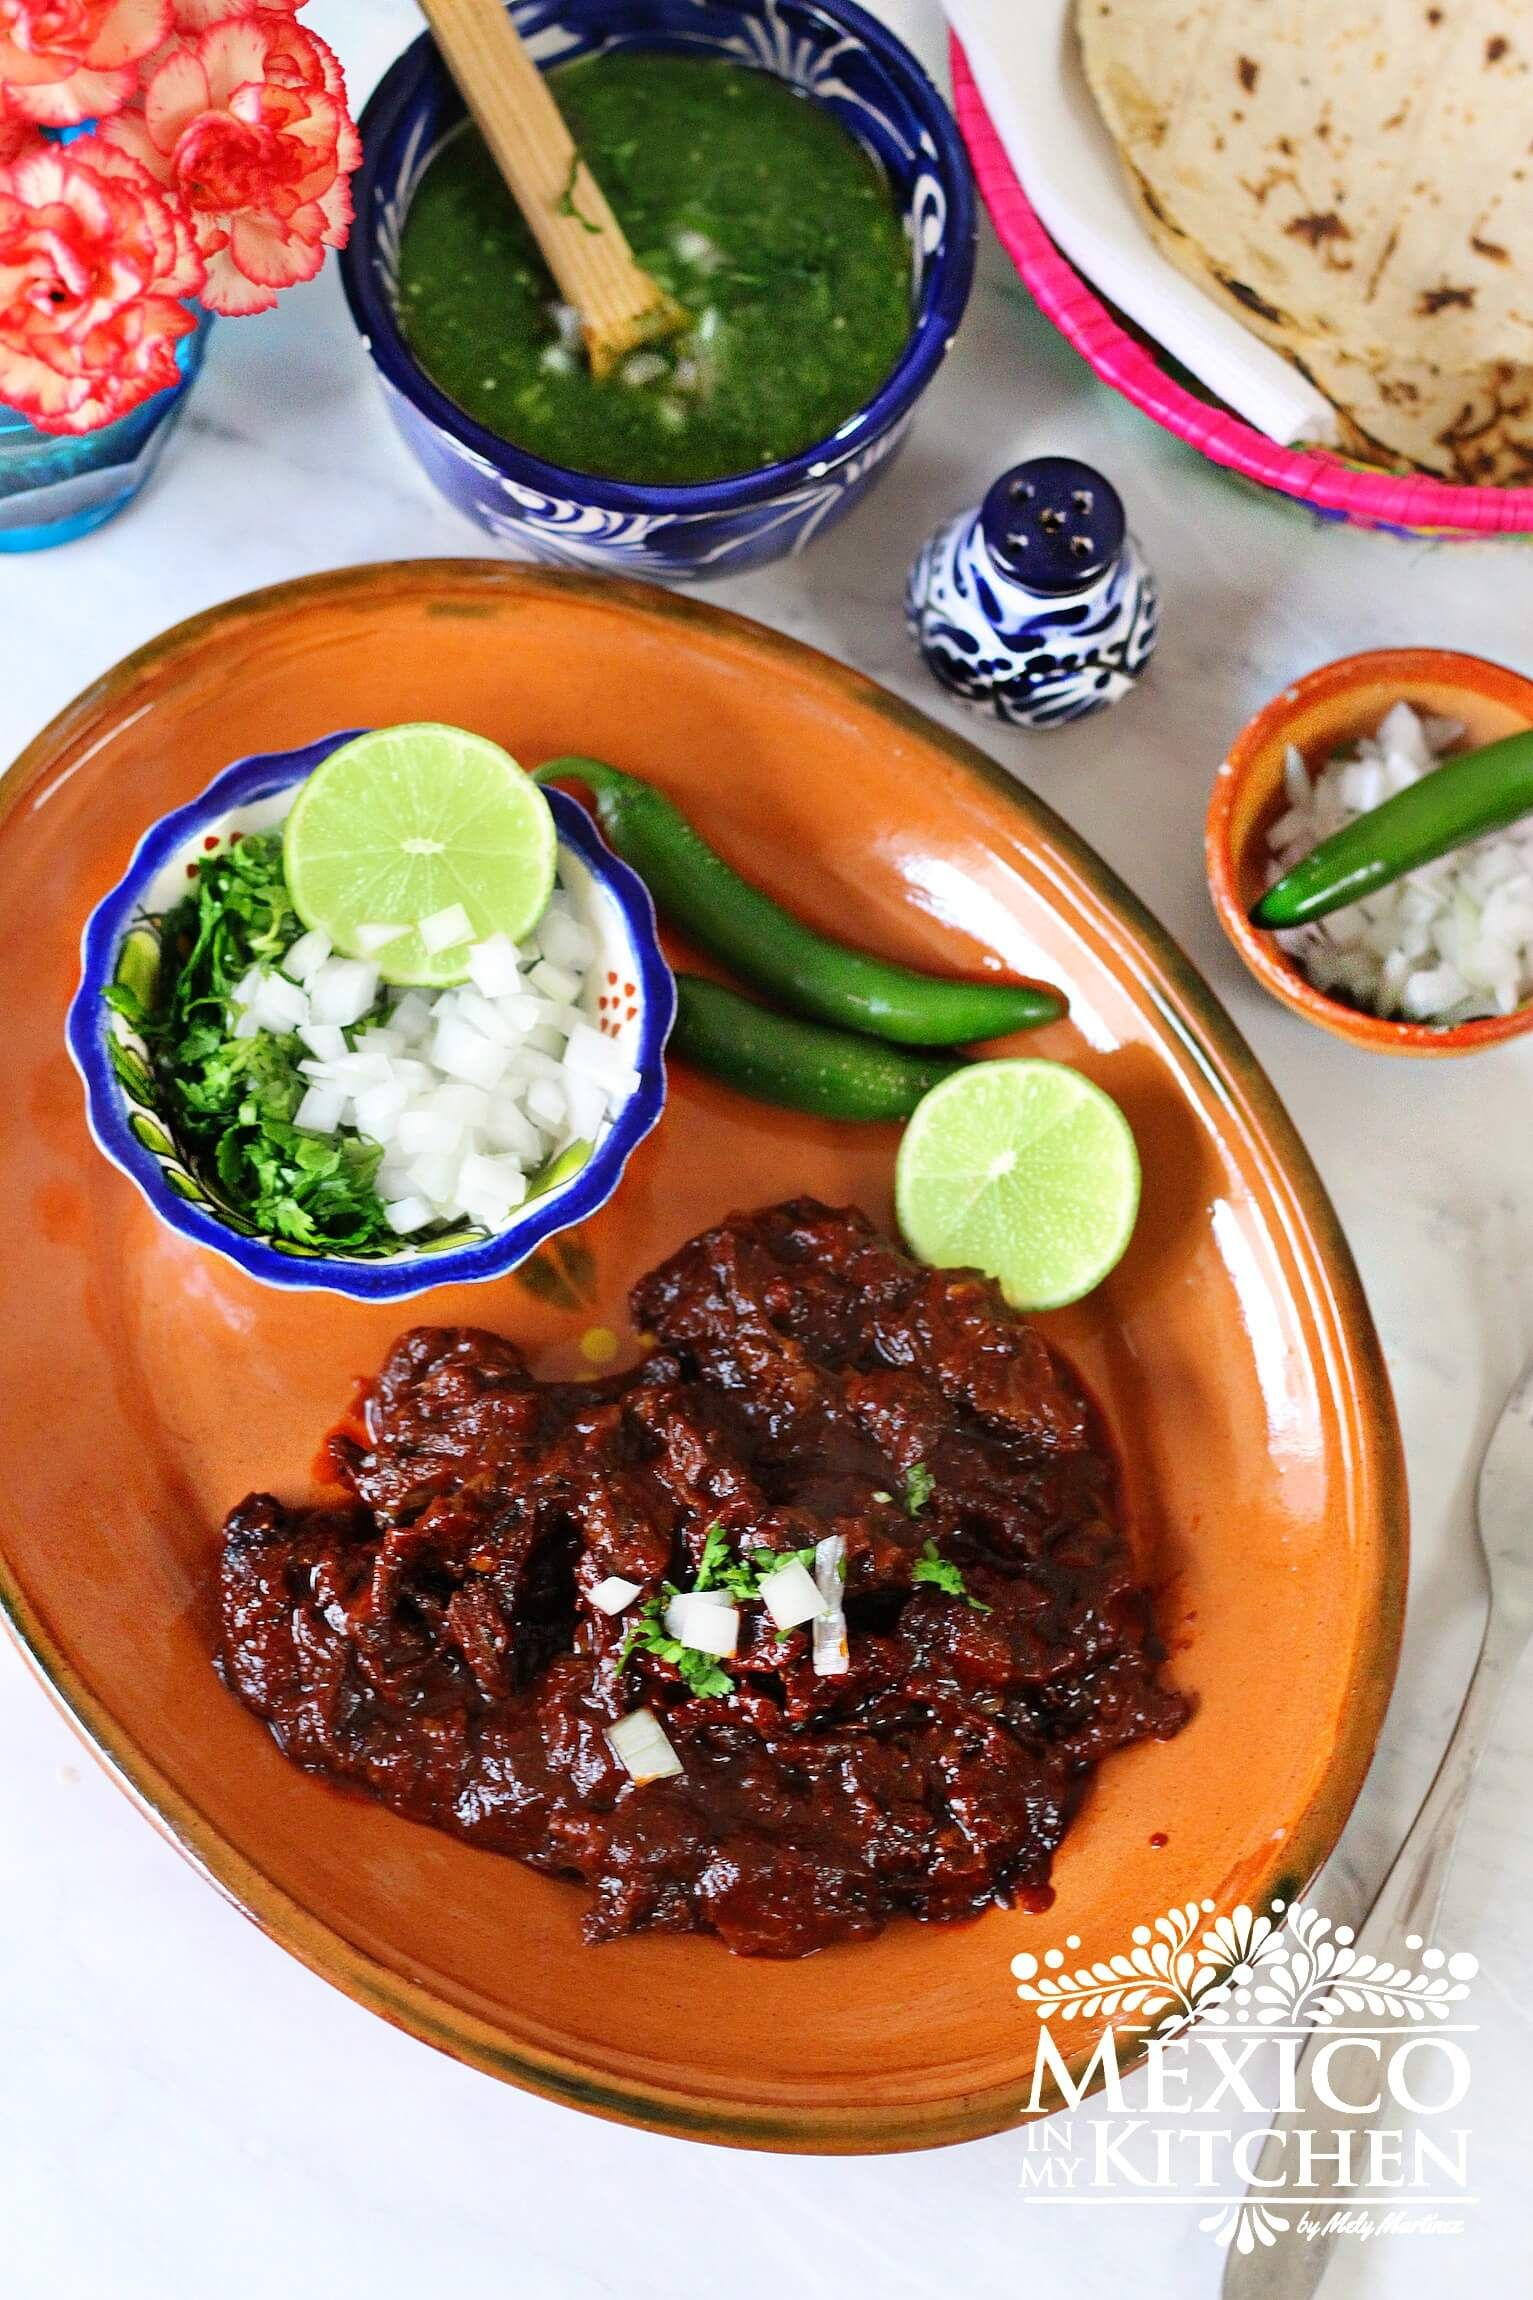 Red Mexican Beef Barbacoa Authentic Mexican Recipes Recipe Mexican Food Recipes Barbacoa Beef Mexican Food Recipes Authentic